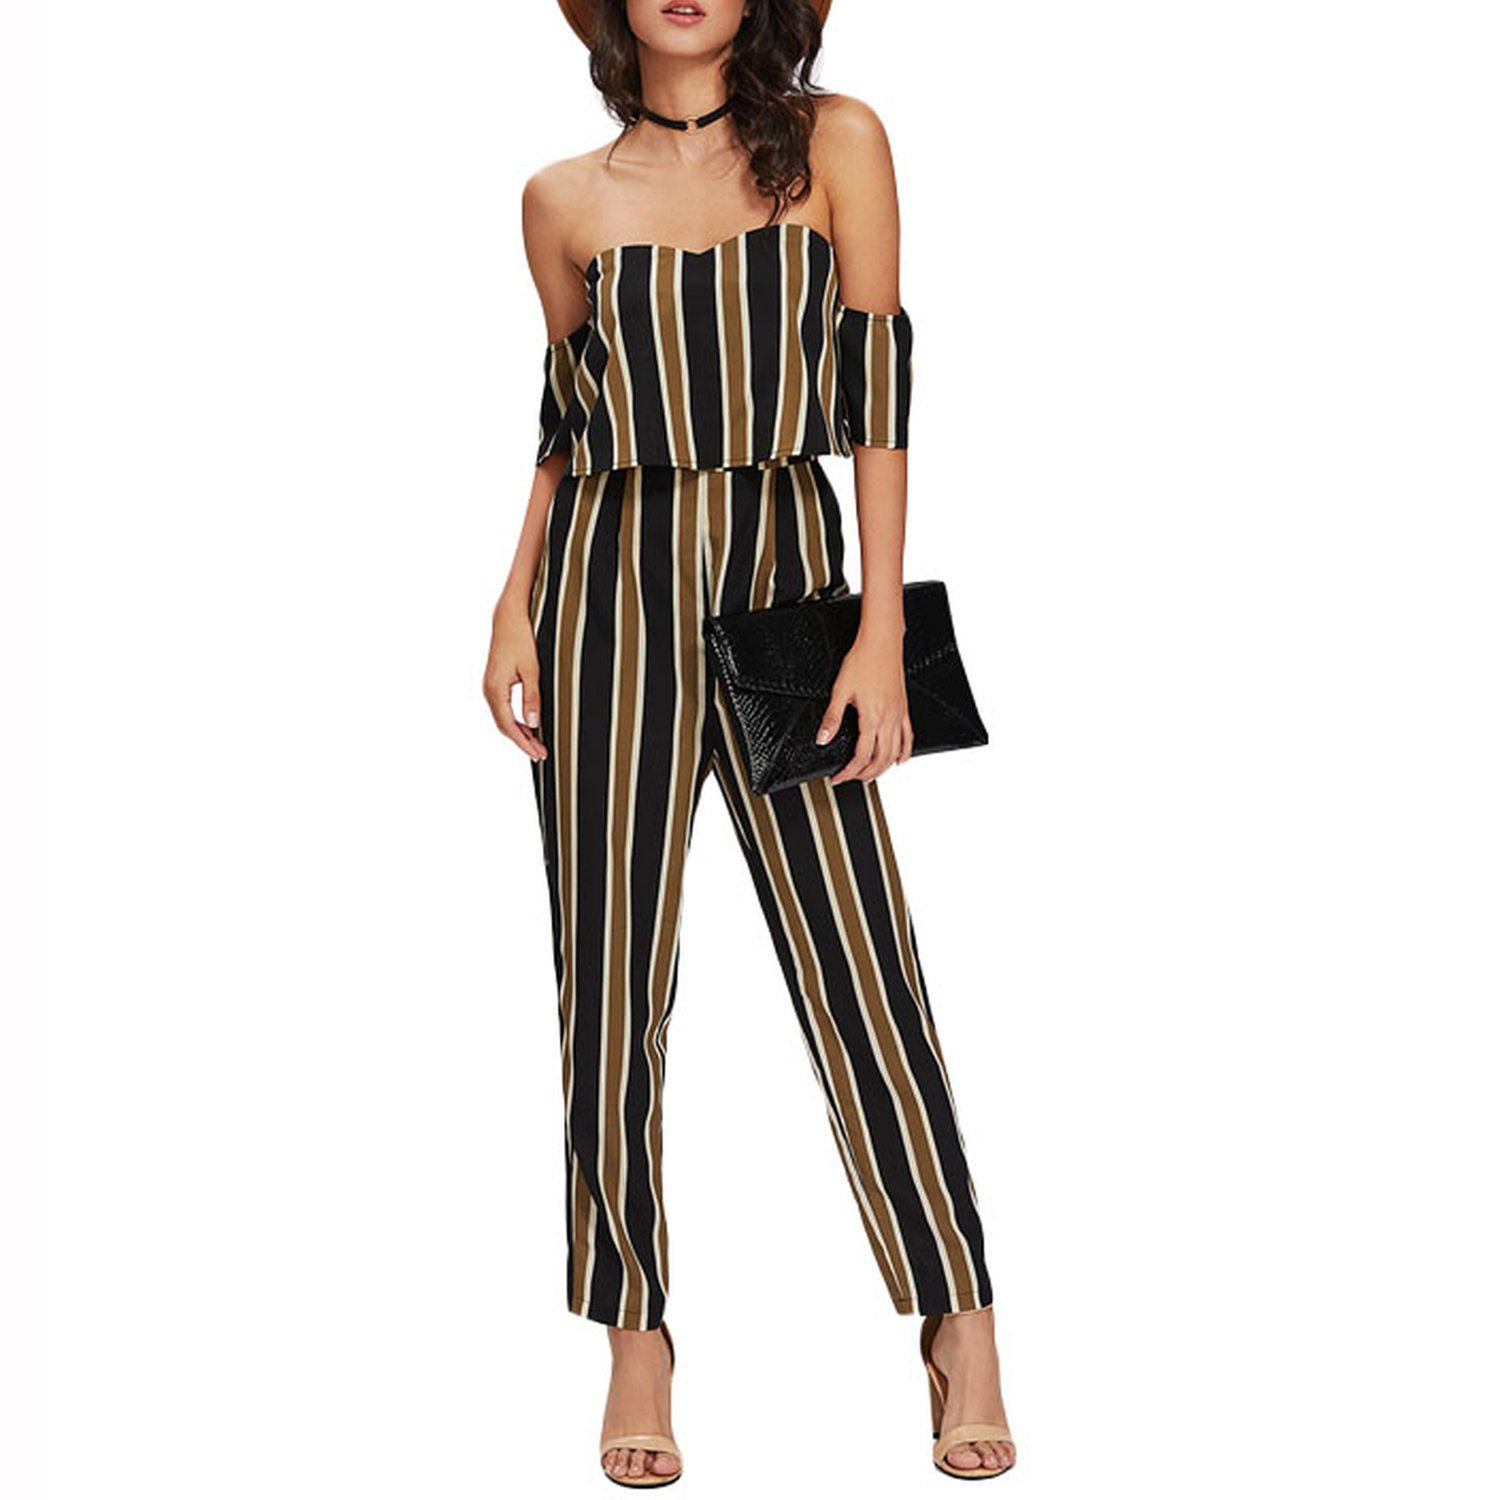 Letters-from-Iceland Flounce Layered Neck Striped Jumpsuit 2018 Off The Shoulder